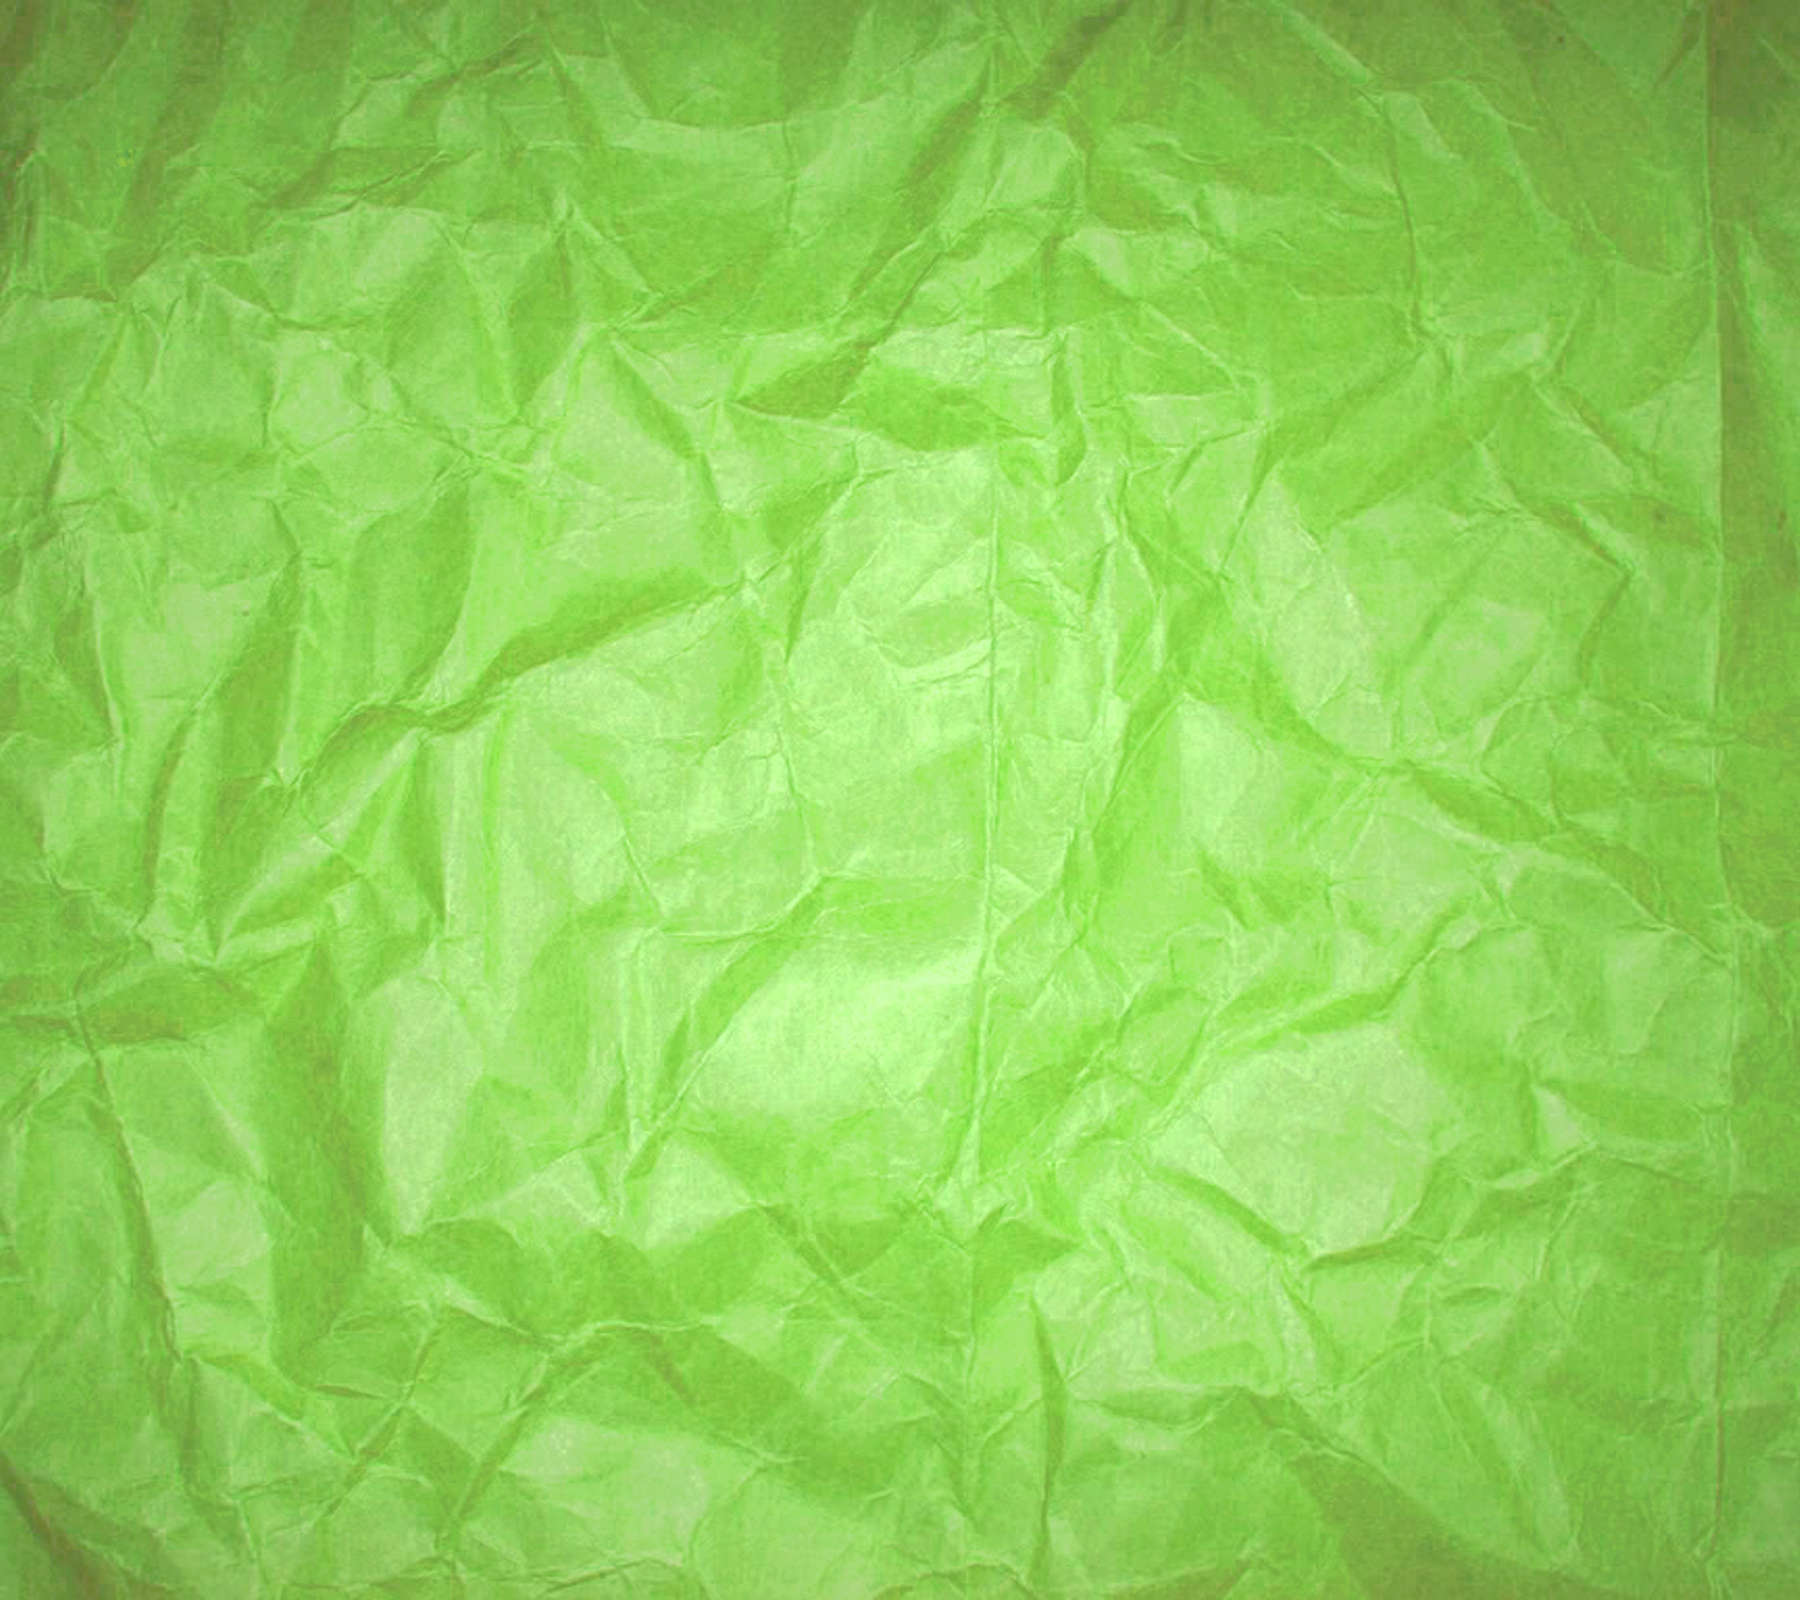 Wrinkled Lime Green Paper Background 1800x1600 Background ...